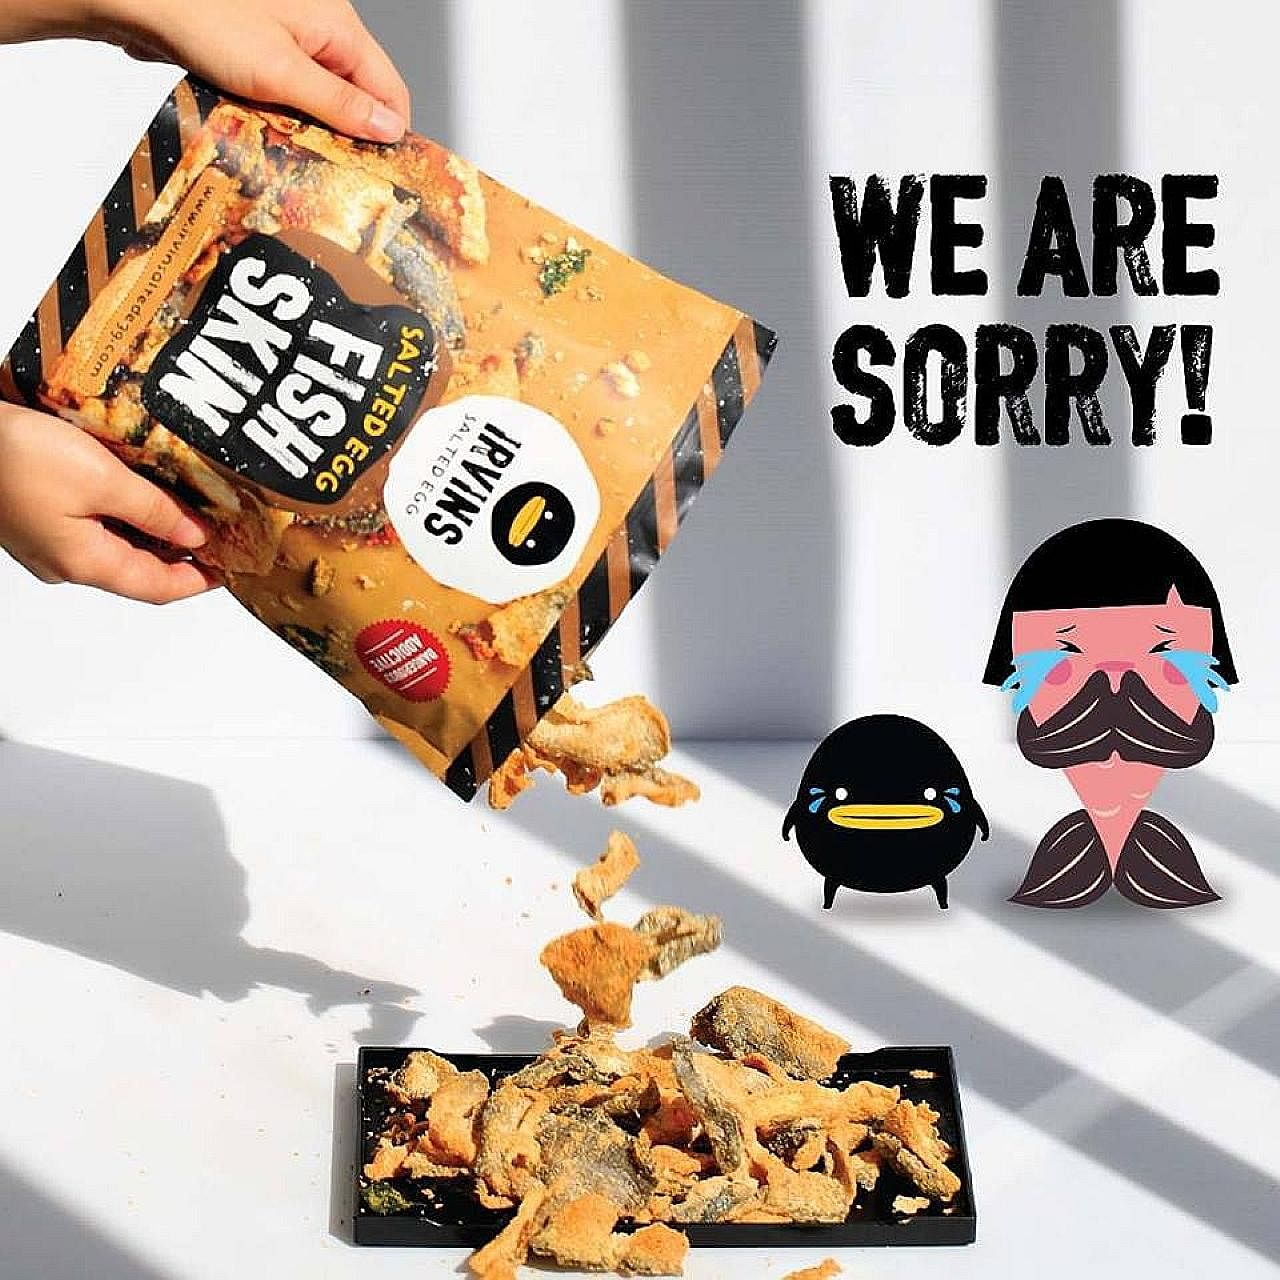 Ms Jane Holloway bought the snack in Bangkok in early November. Her brother initially thought the dead lizard was a baby salmon fish head. Irvins Salted Egg issued an apology yesterday. The Singapore-based food company is offering refunds for certain